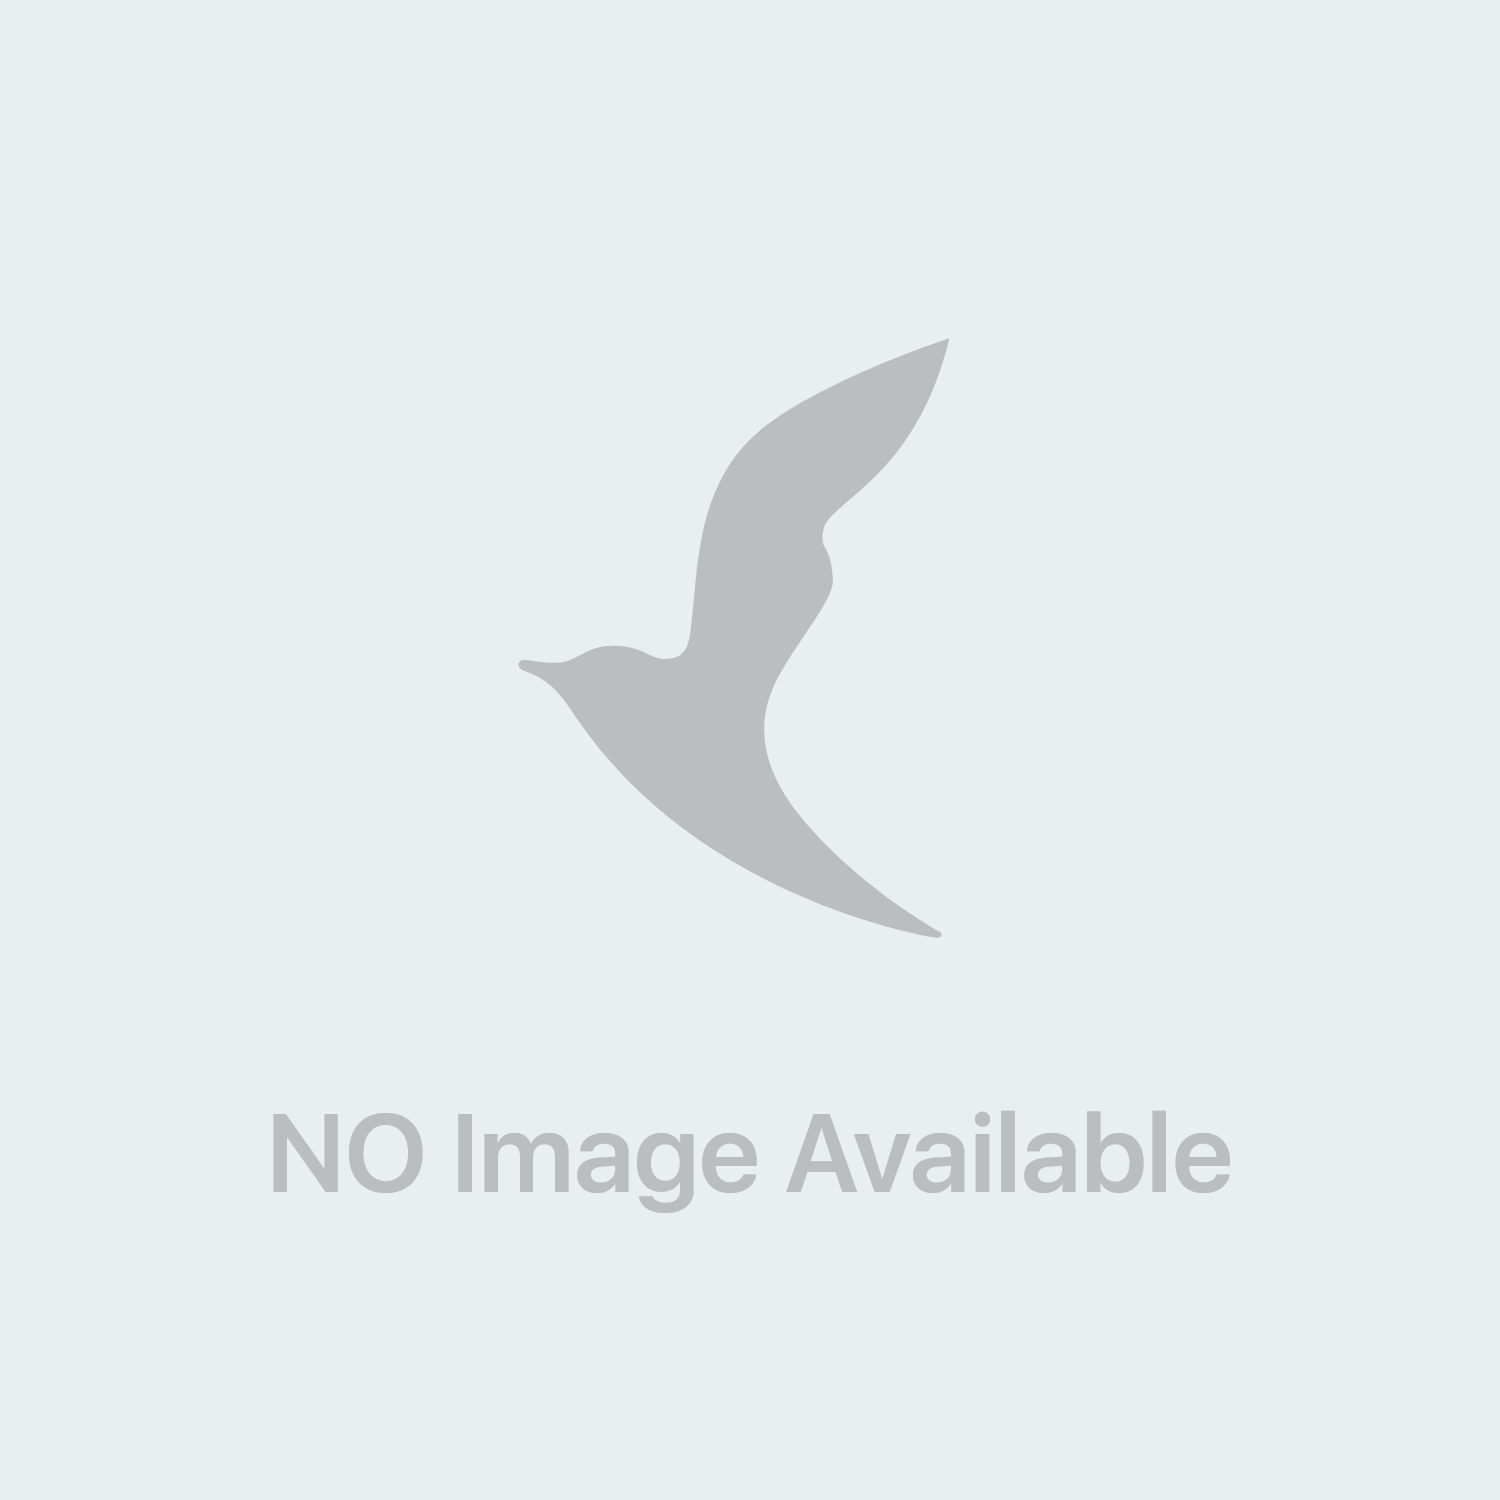 Nbf Lanes Carevit Dog Integratore Vitaminico Cani 100 Compresse